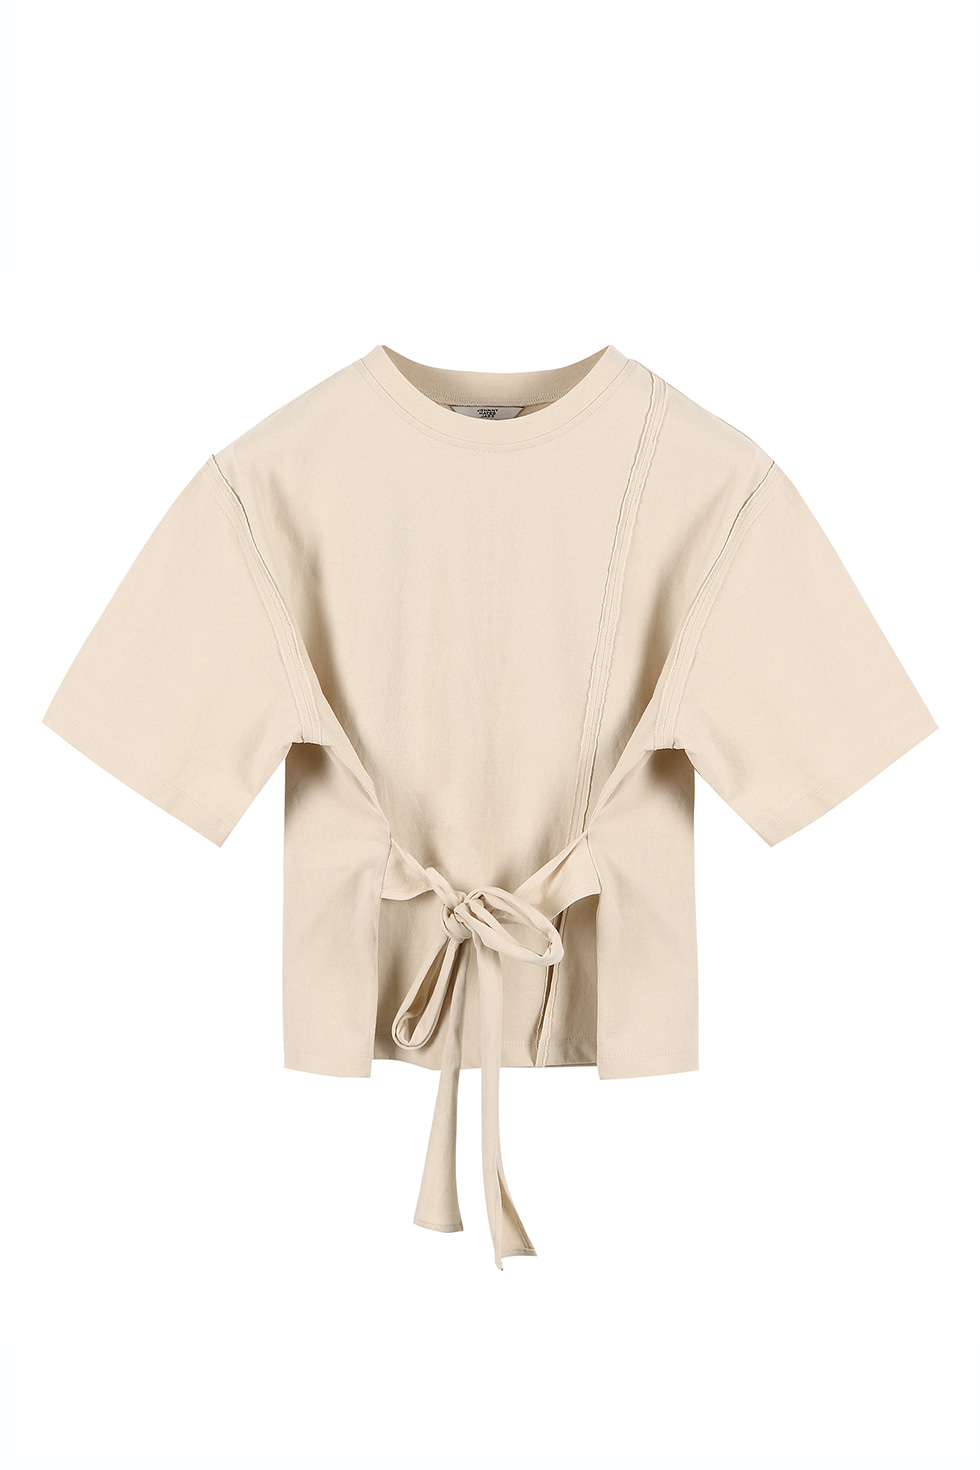 UNBALANCED JERSEY TOP - BEIGE